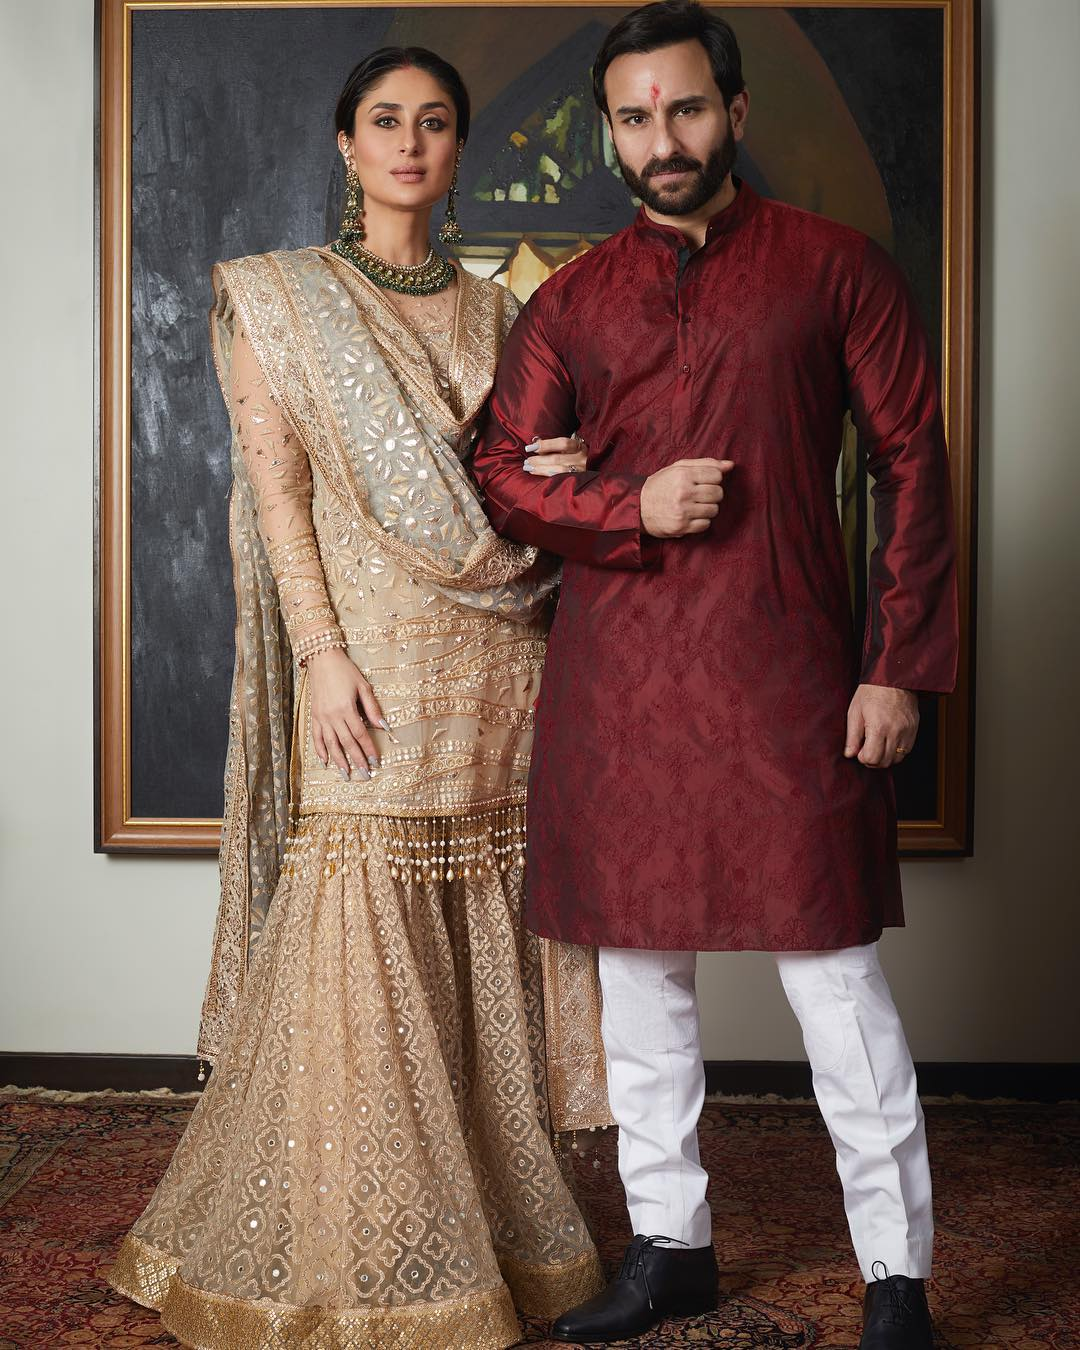 Let's Just Talk About Kareena Kapoor's Regal Look In Tarun Tahiliani's Sharara